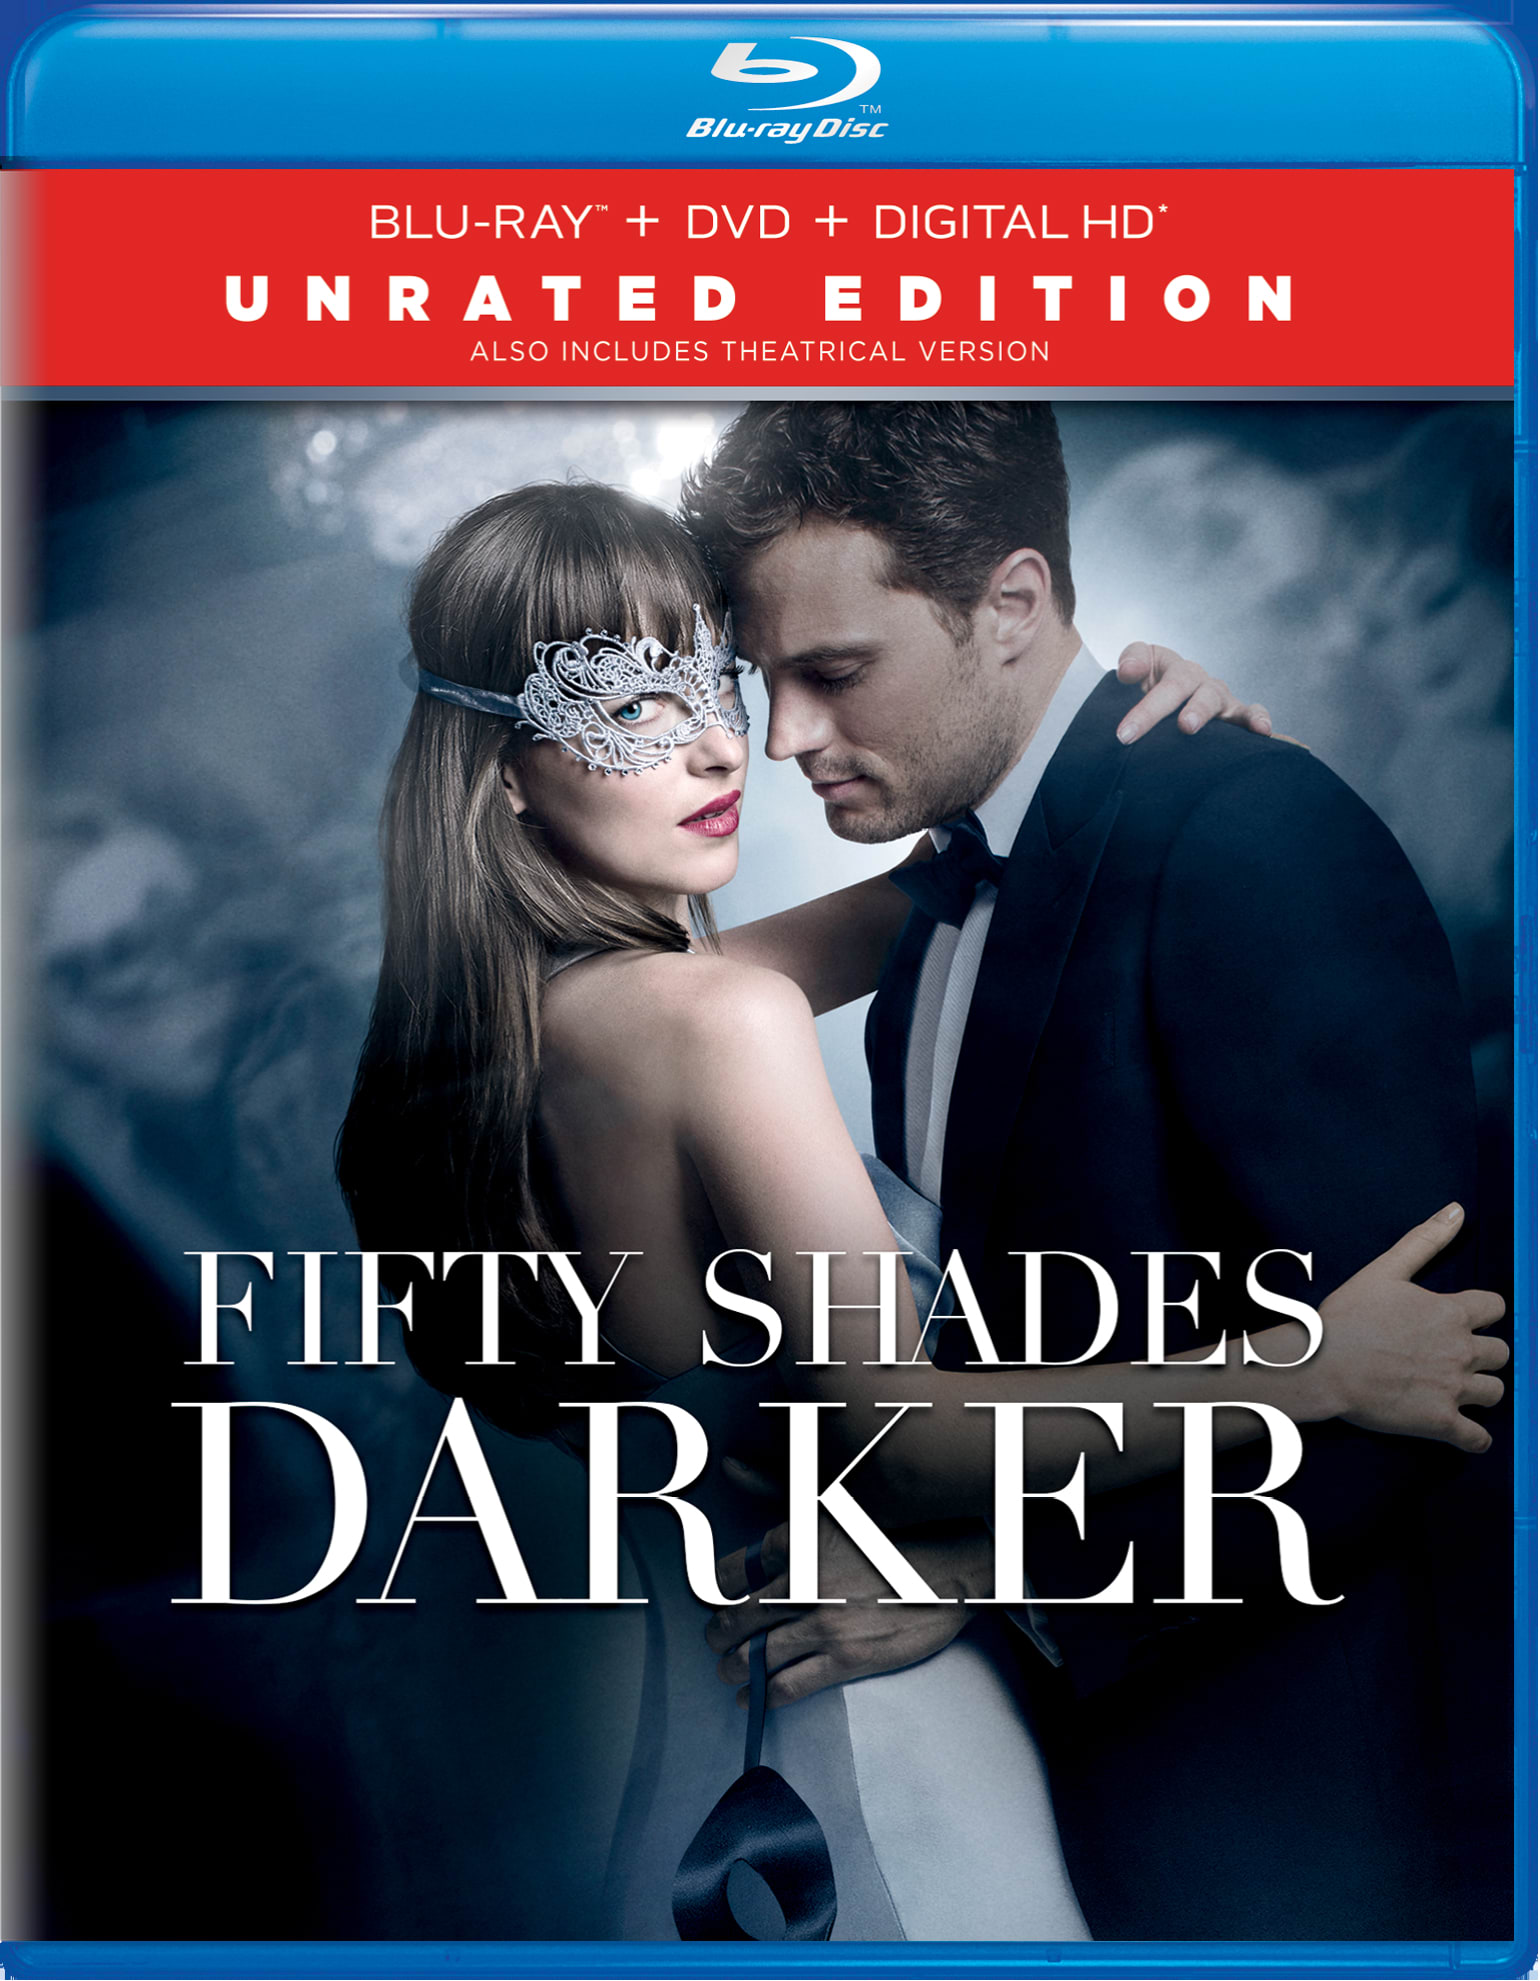 Fifty Shades Darker (Unrated Edition DVD + Digital) [Blu-ray]